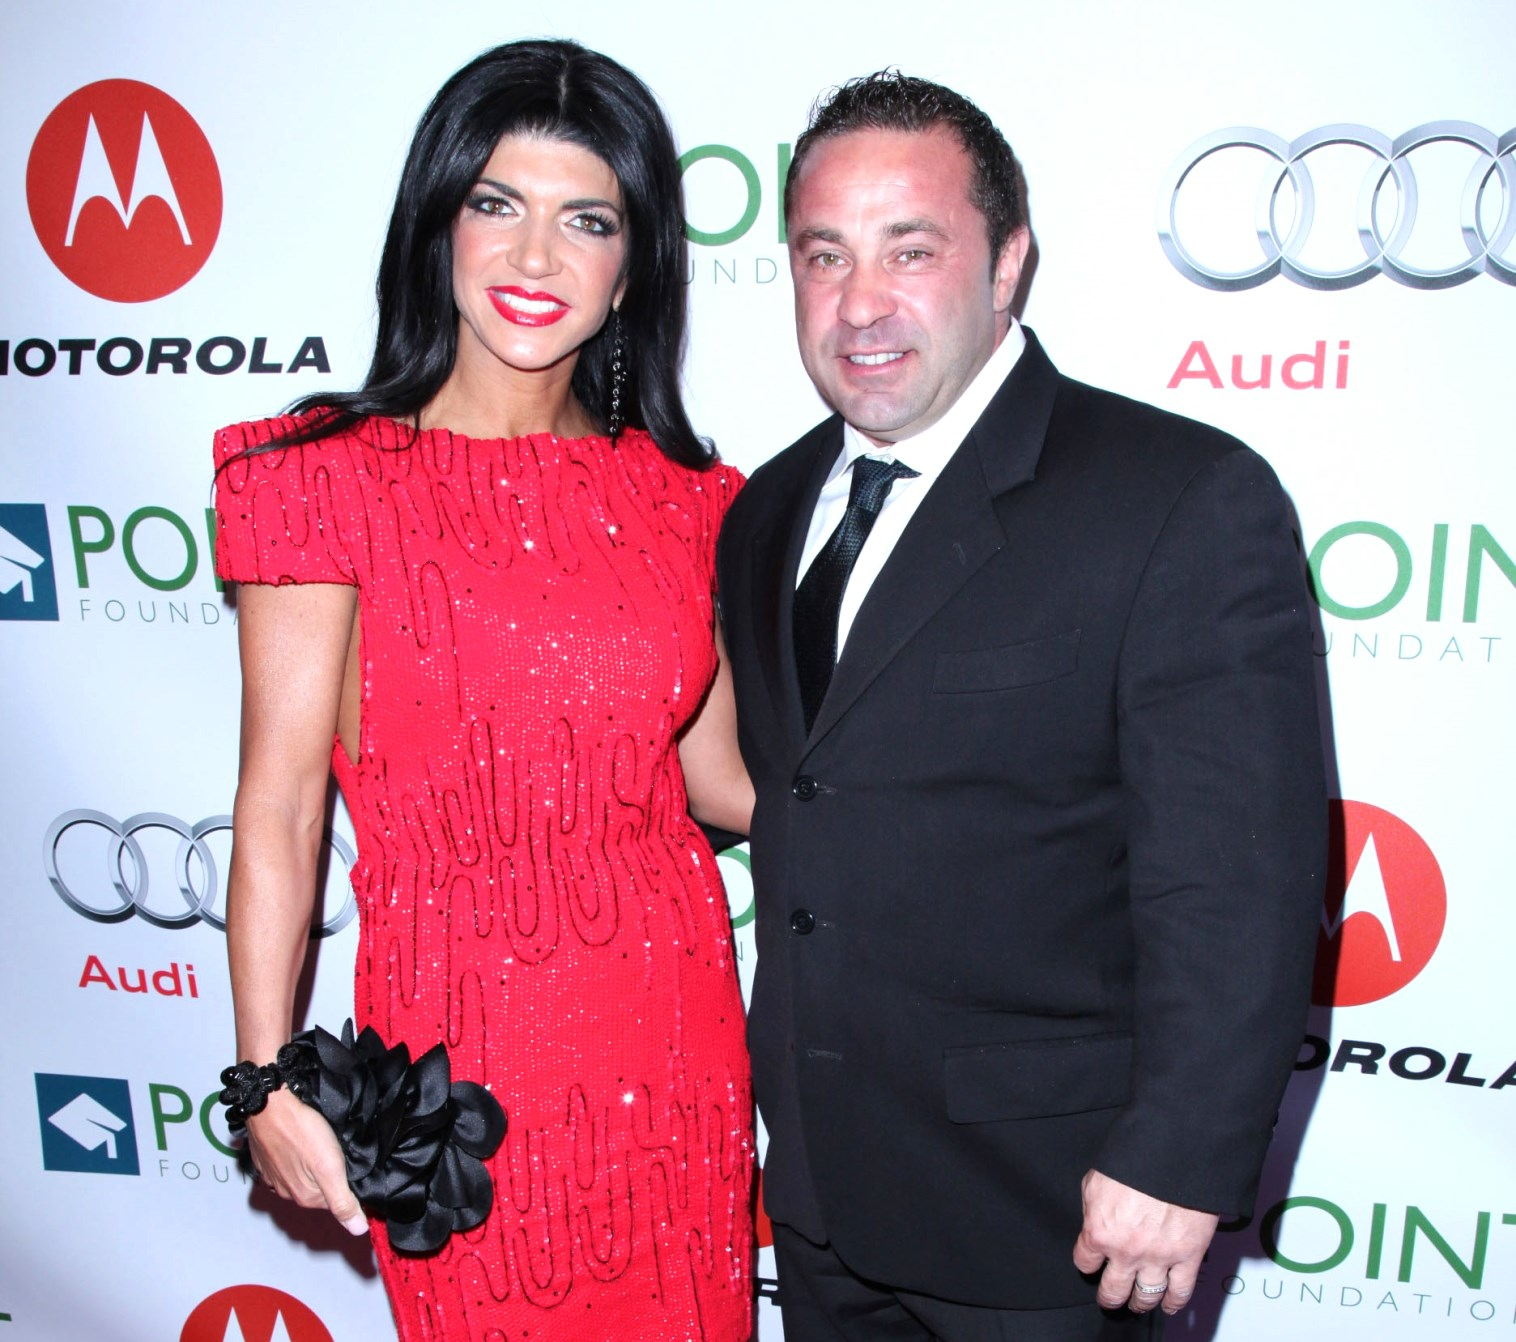 Is Joe Giudice's Family Upset With His Wife Teresa Giudice? The RHONJ Star Continues to Party in Greece as His Deportation Looms